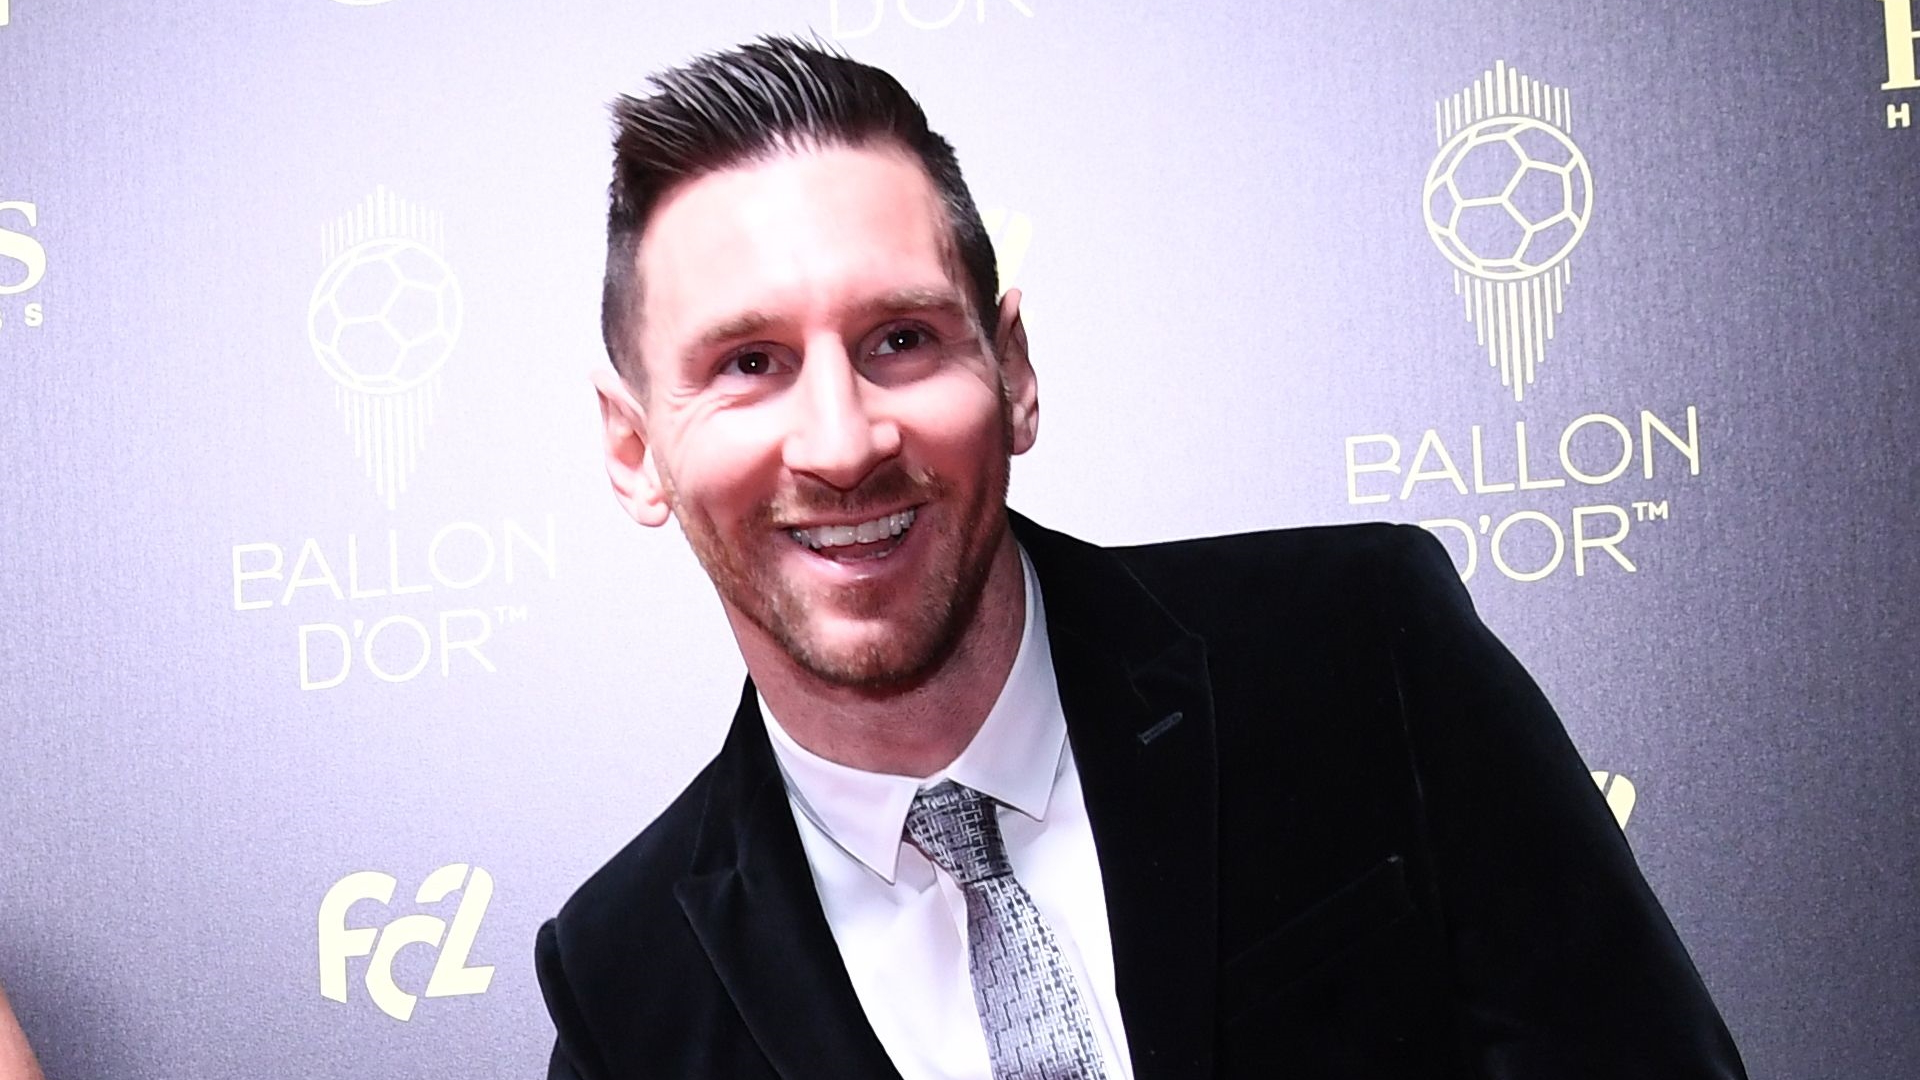 Video: Someone will beat my Ballon d'Or record - Messi